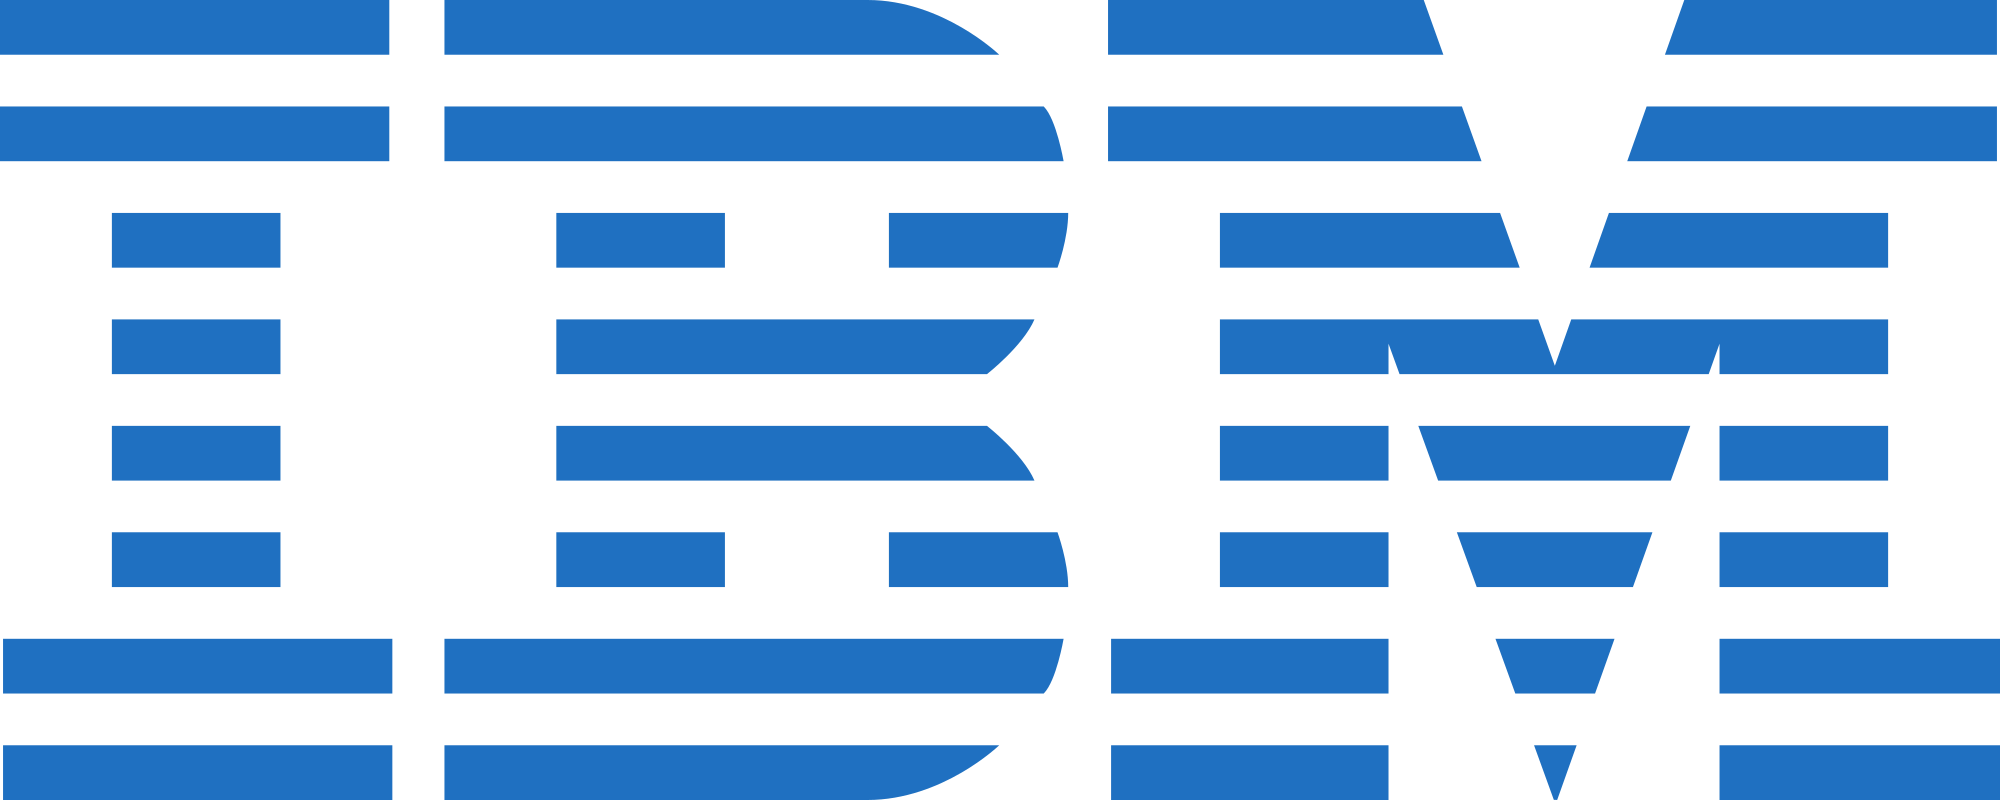 Ibm logo png. File svg wikimedia commons